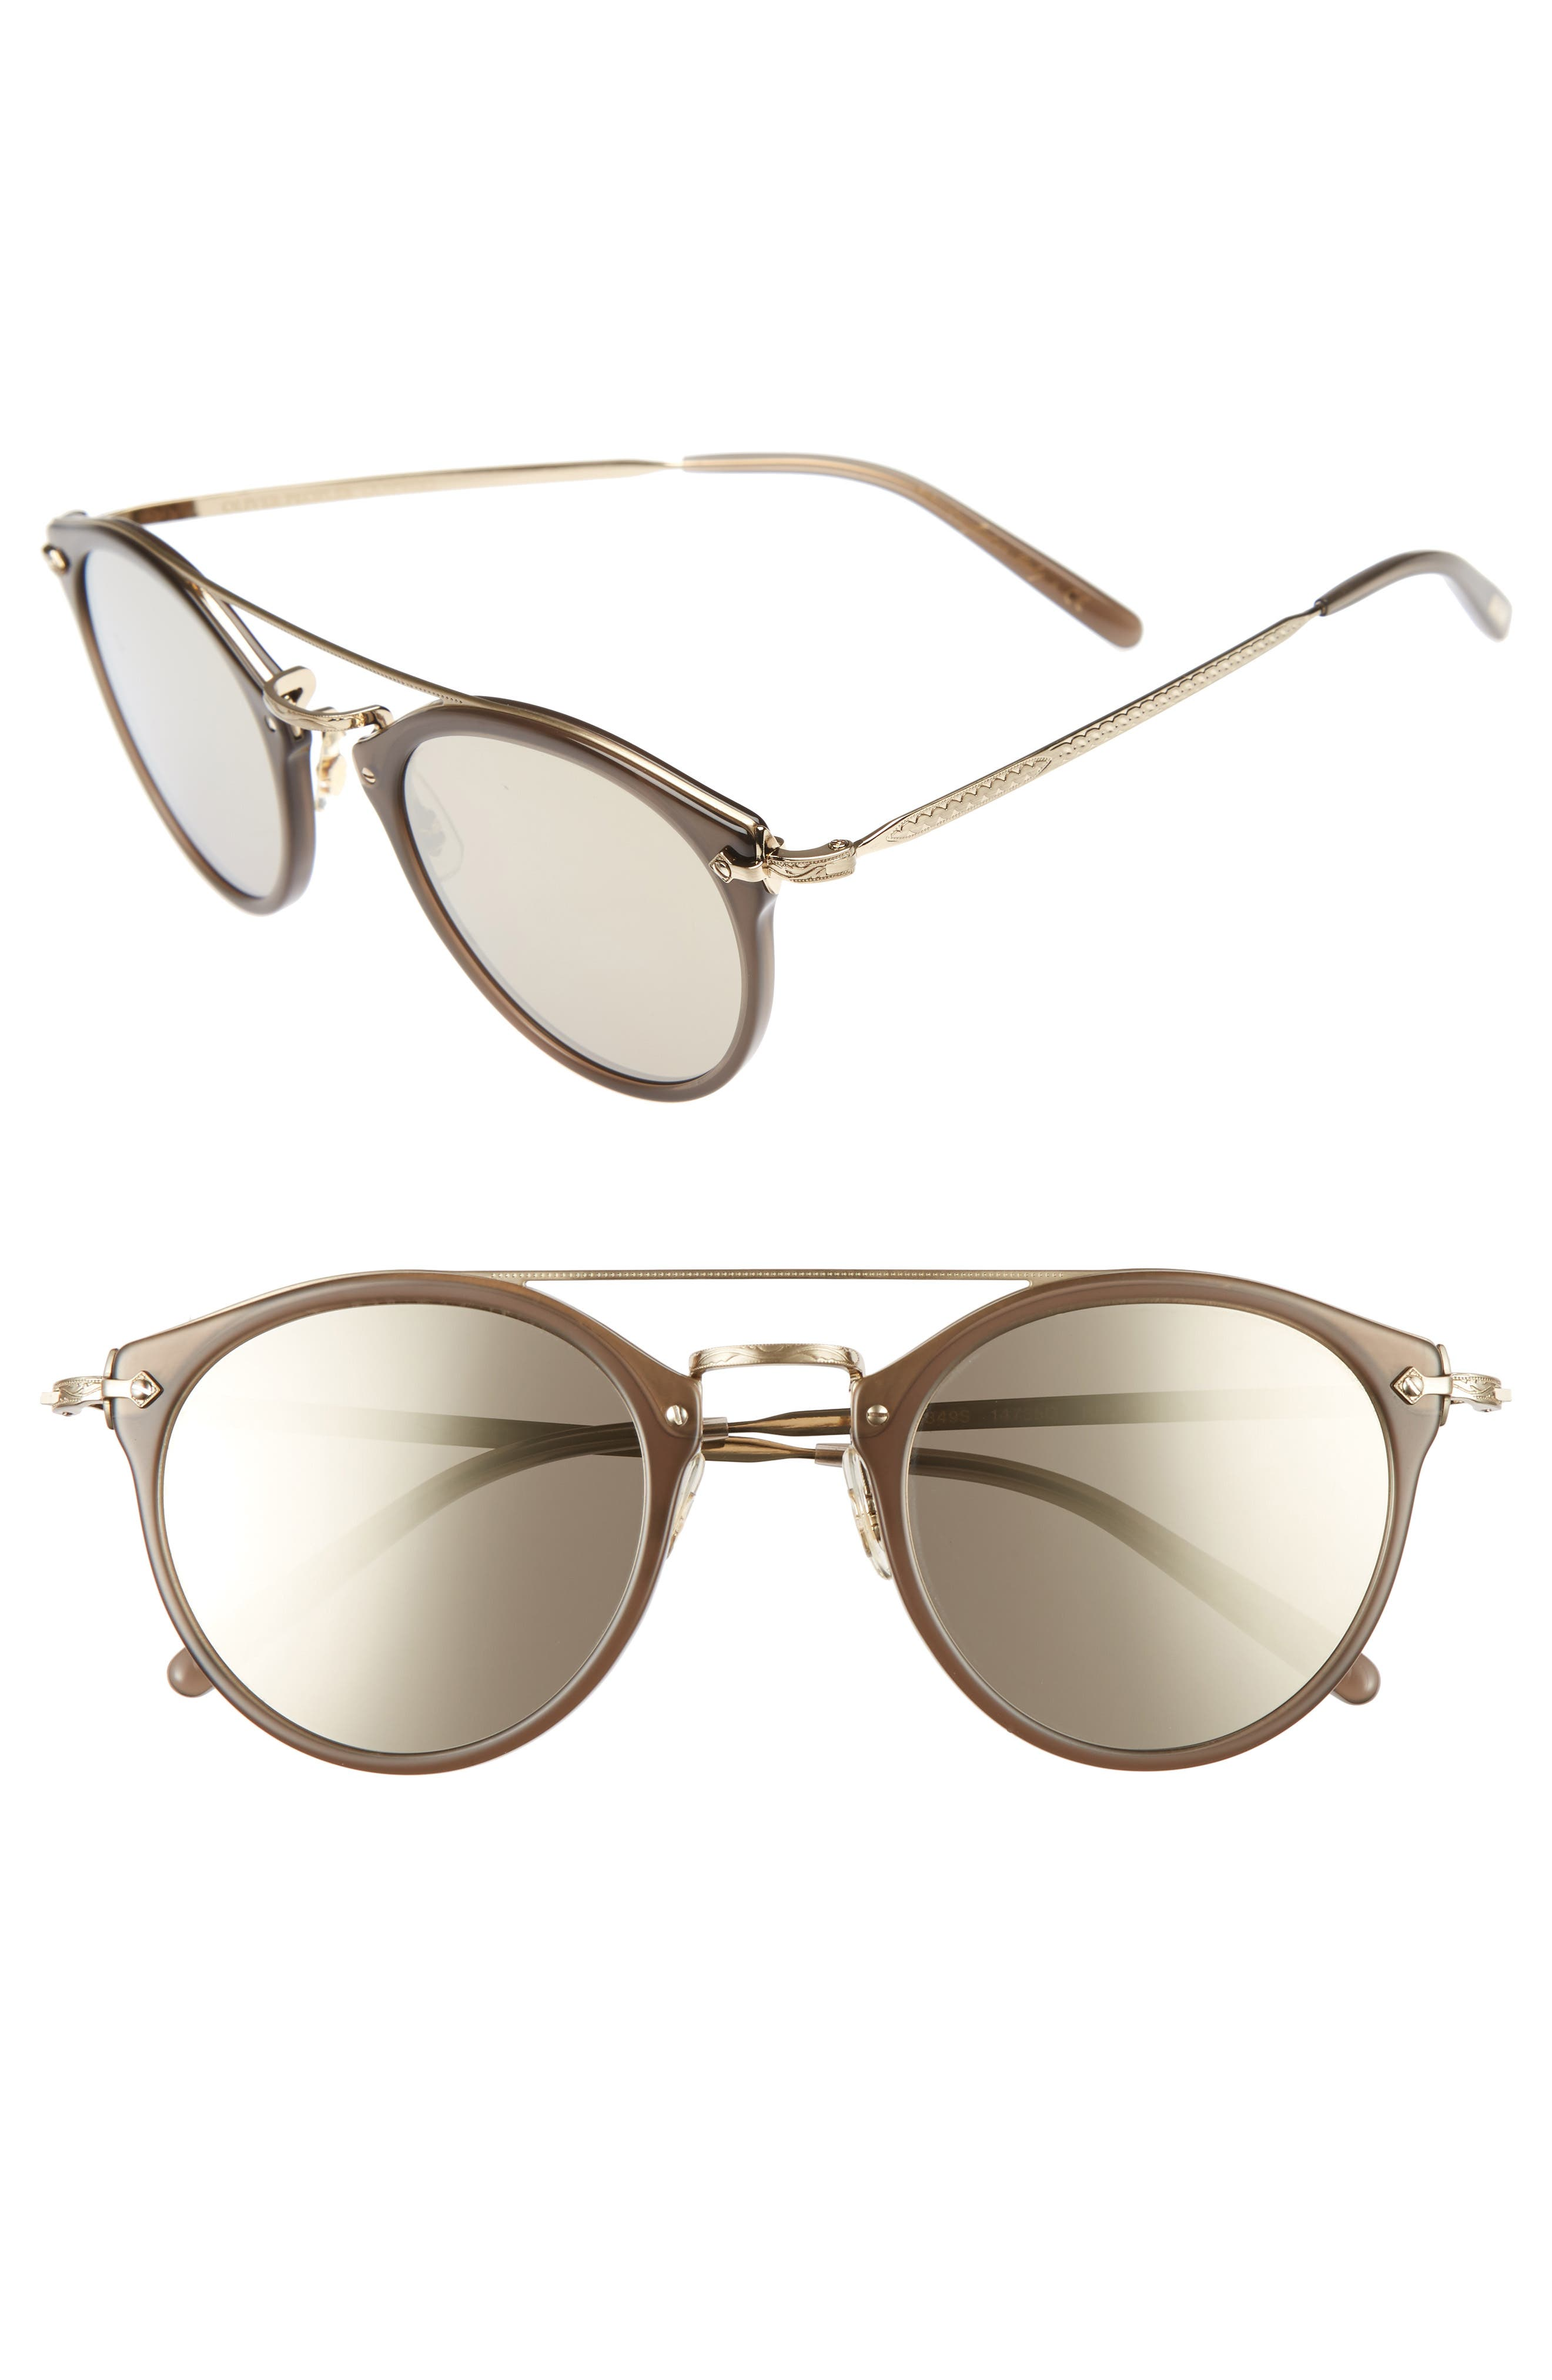 Alternate Image 1 Selected - Oliver Peoples Remick 50mm Brow Bar Sunglasses